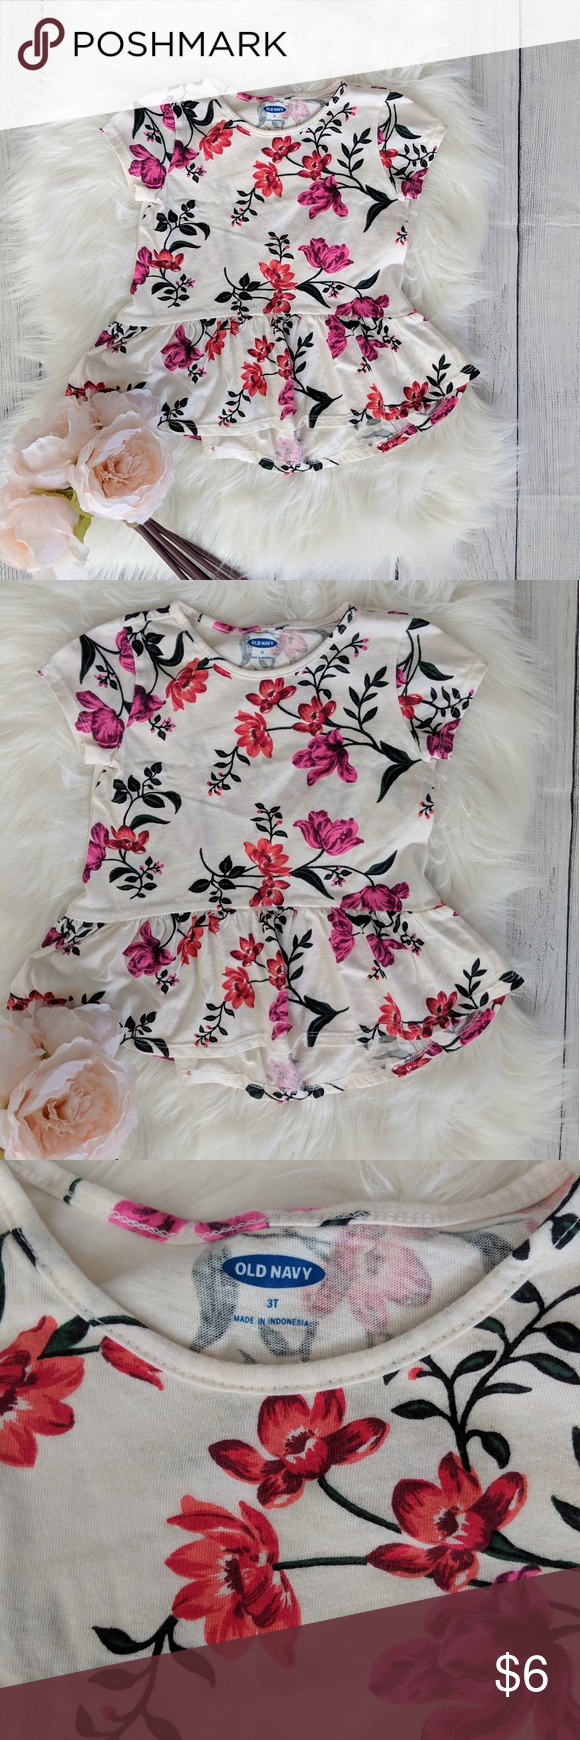 80c83d3e5 3T Old Navy Flower Print Shirt Brand: Old Navy Size: 3T Old Navy Shirts &  Tops Tees - Short Sleeve